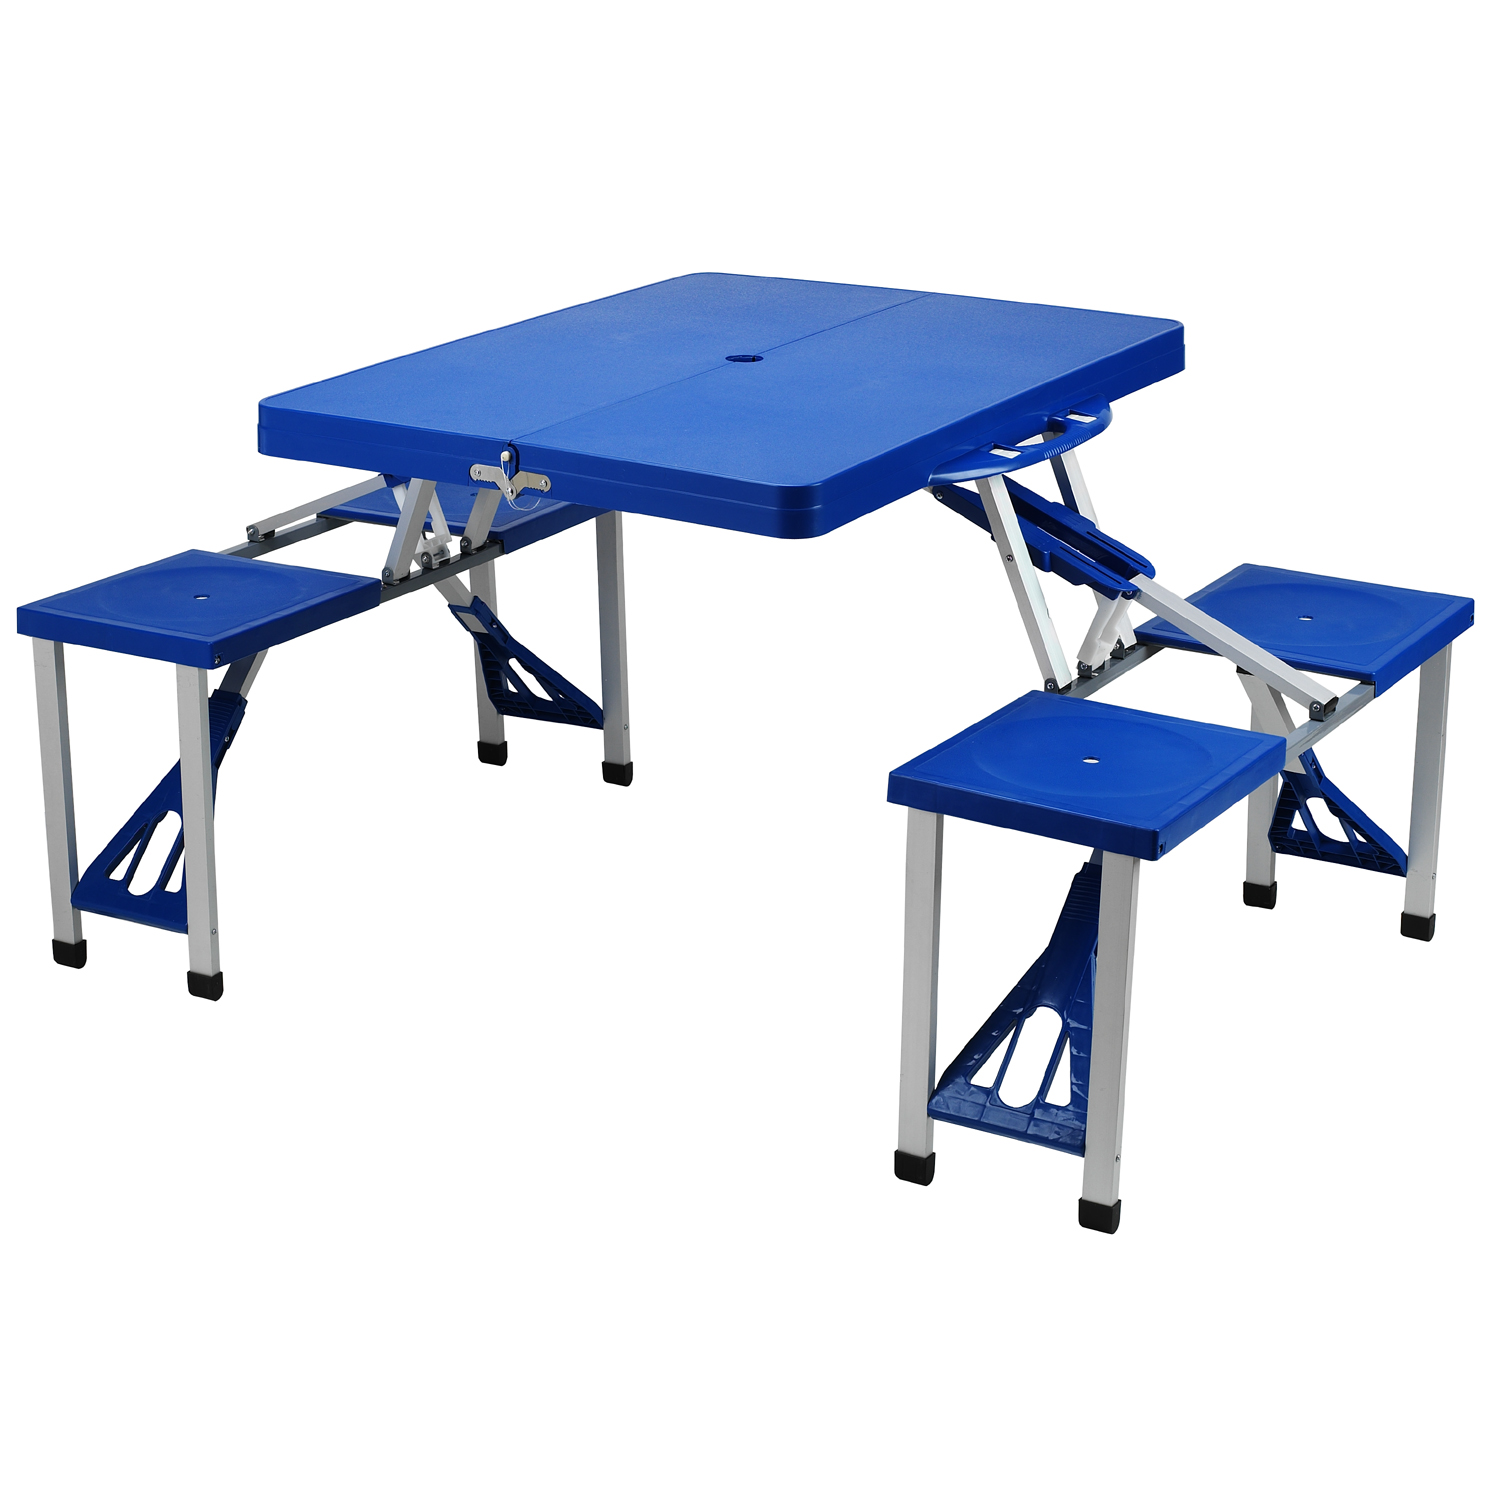 camping table picnic at ascot portable picnic table set, blue IYSALYG